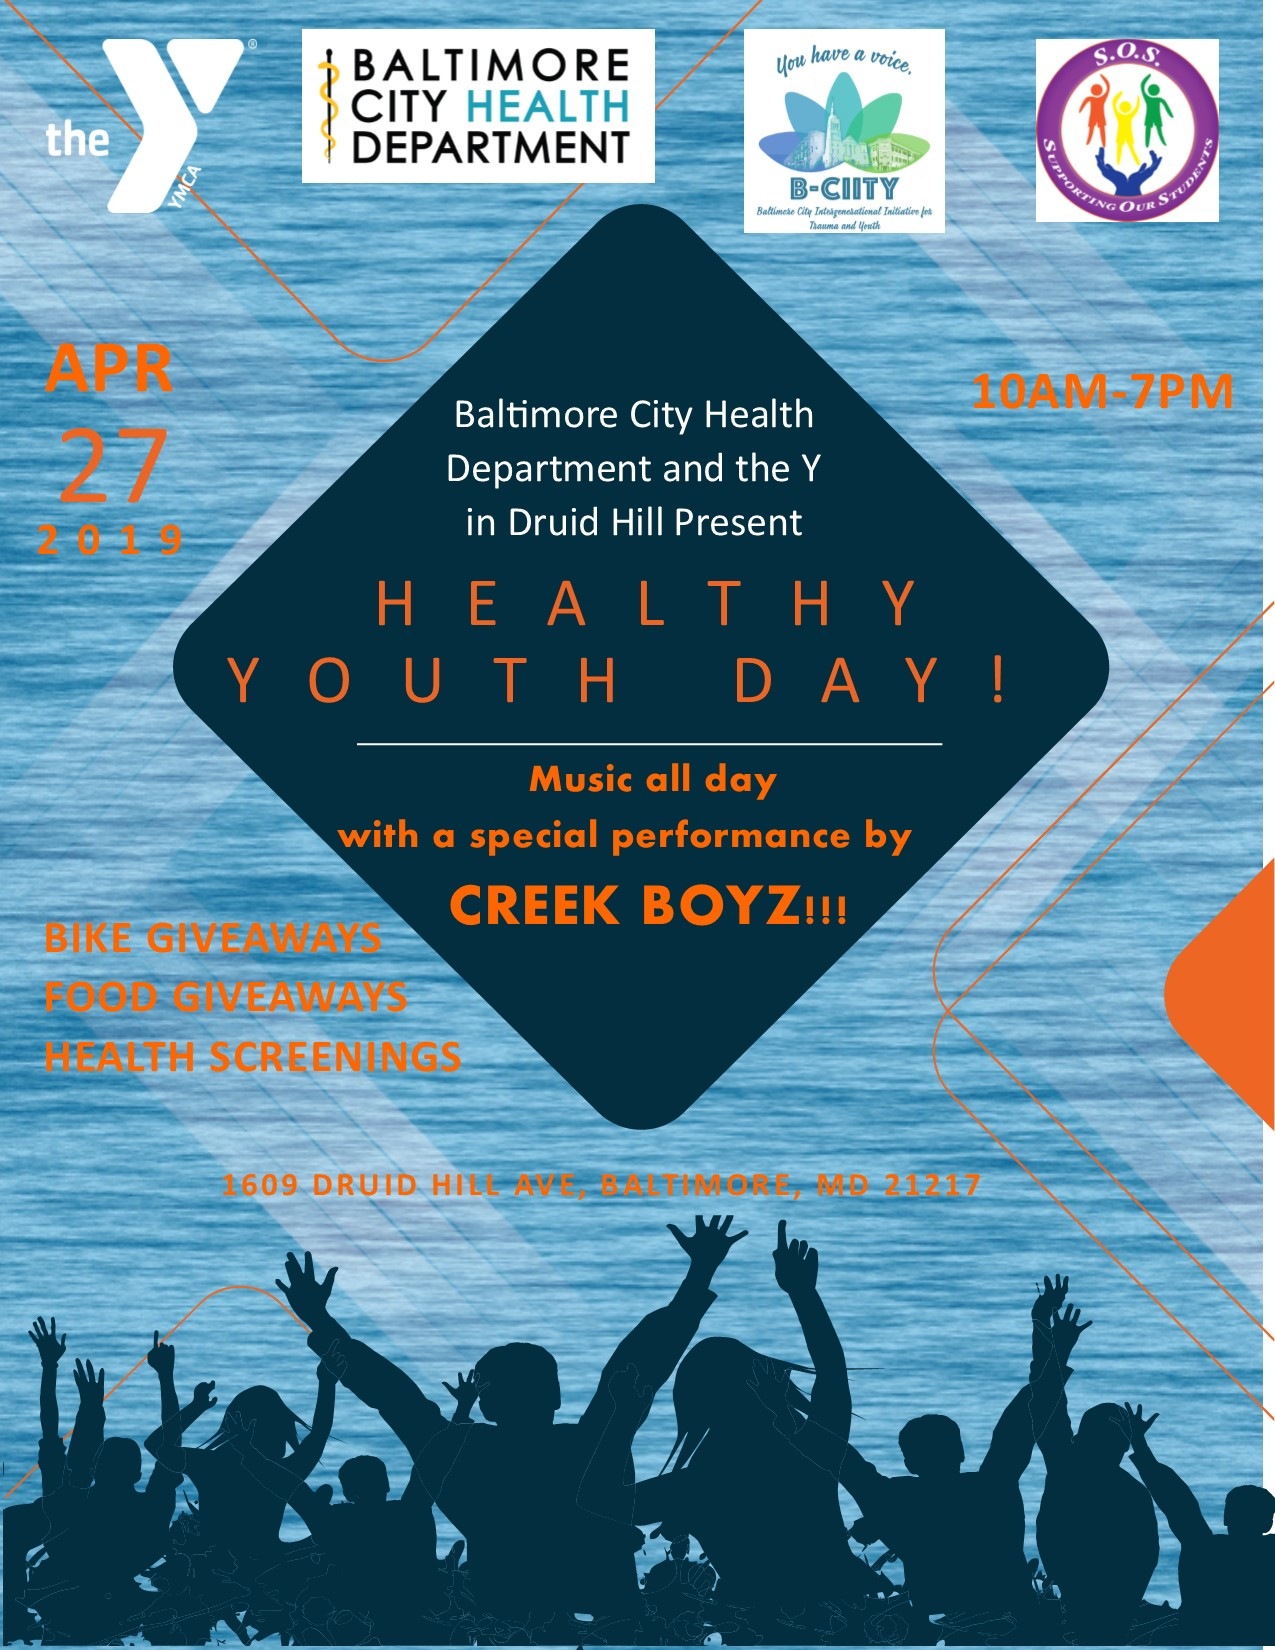 Healthy Youth Day Event Flyer new.jpg